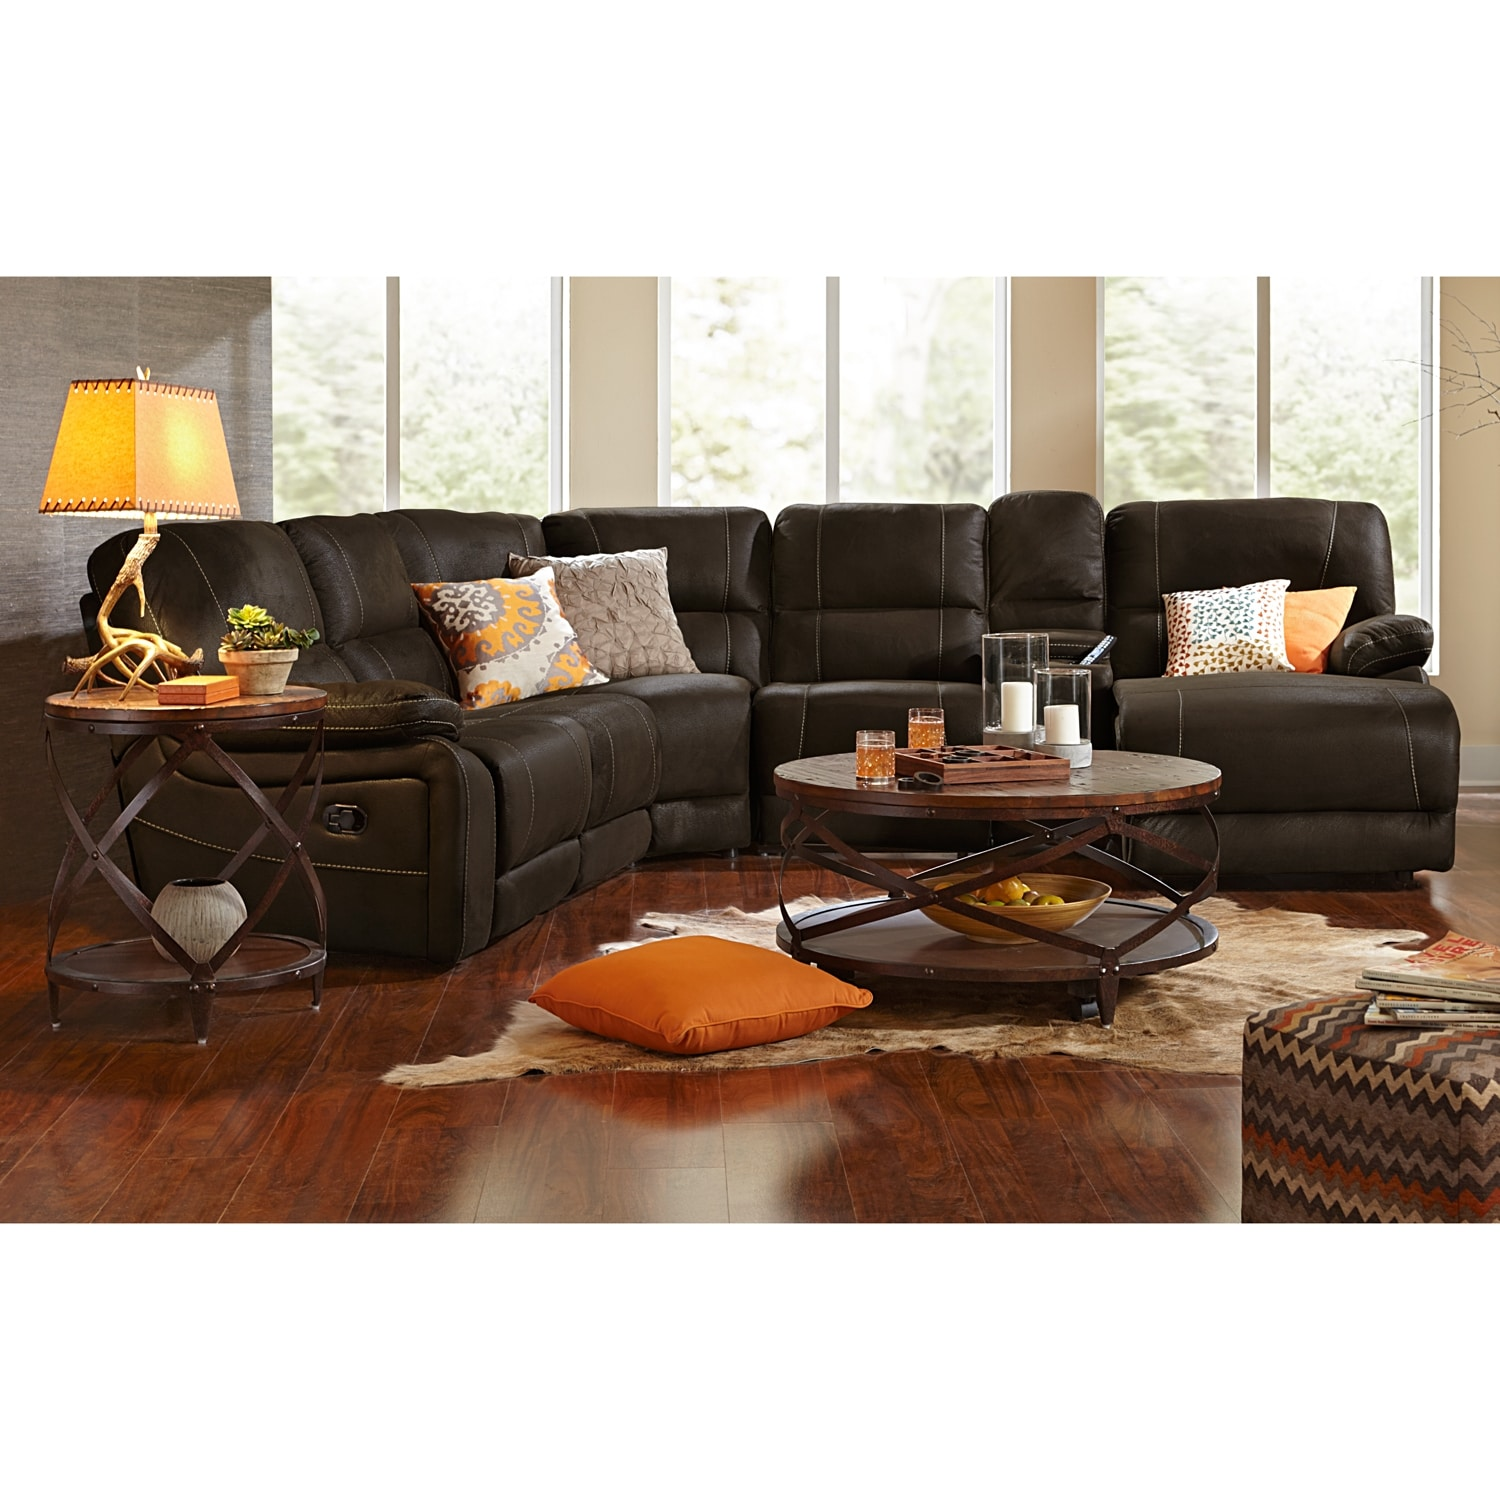 Wyoming 5-Piece Reclining Sectional With Right-Facing